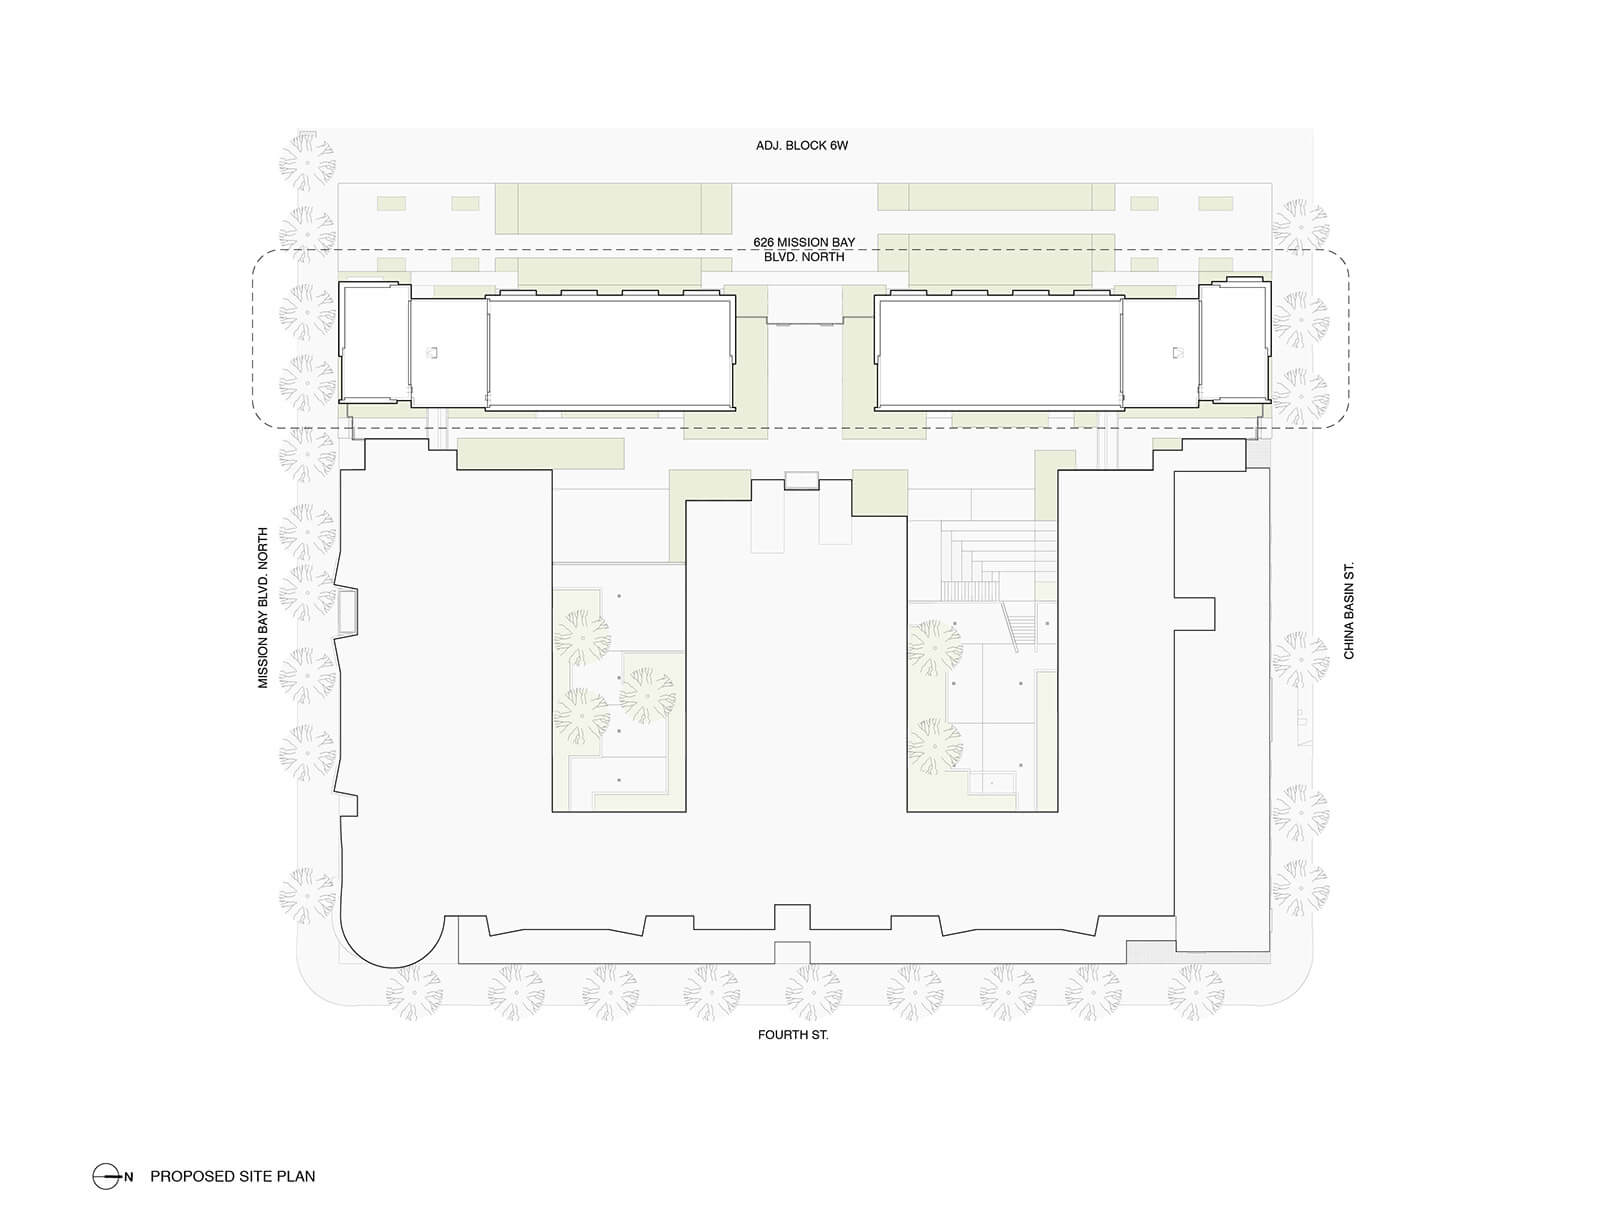 studio vara multifamily 626 mission bay blvd. site plan